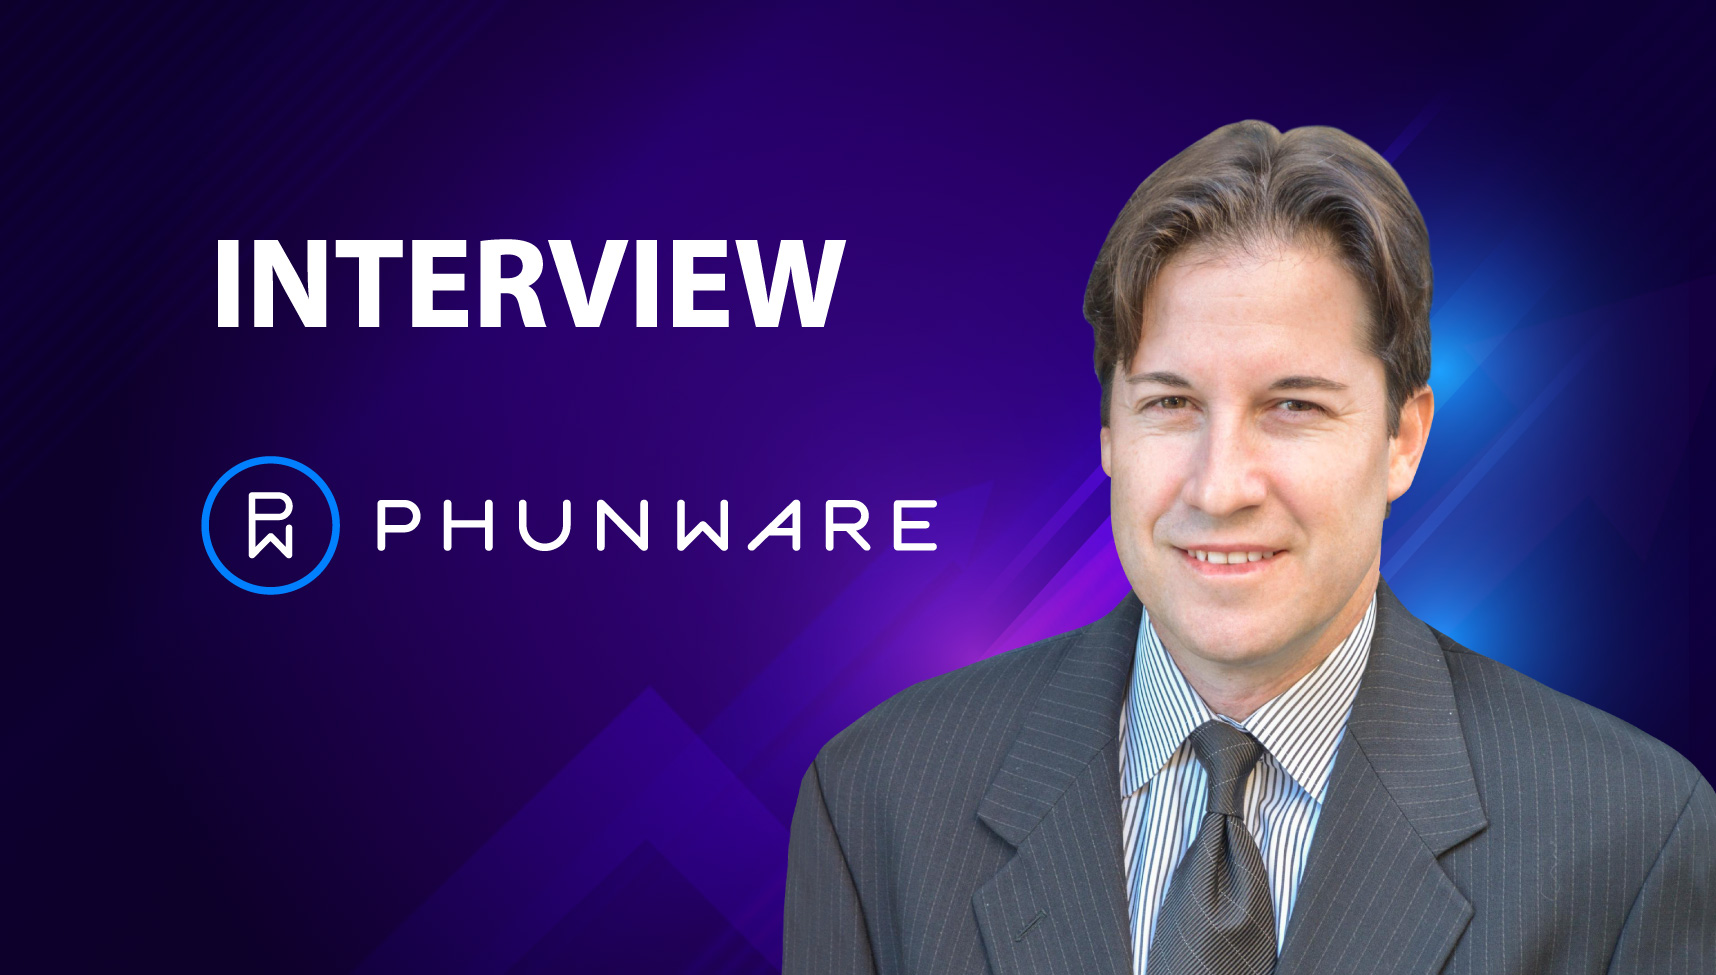 SalesTech Star Interview With Jeff Friedman, VP of Sales at Phunware